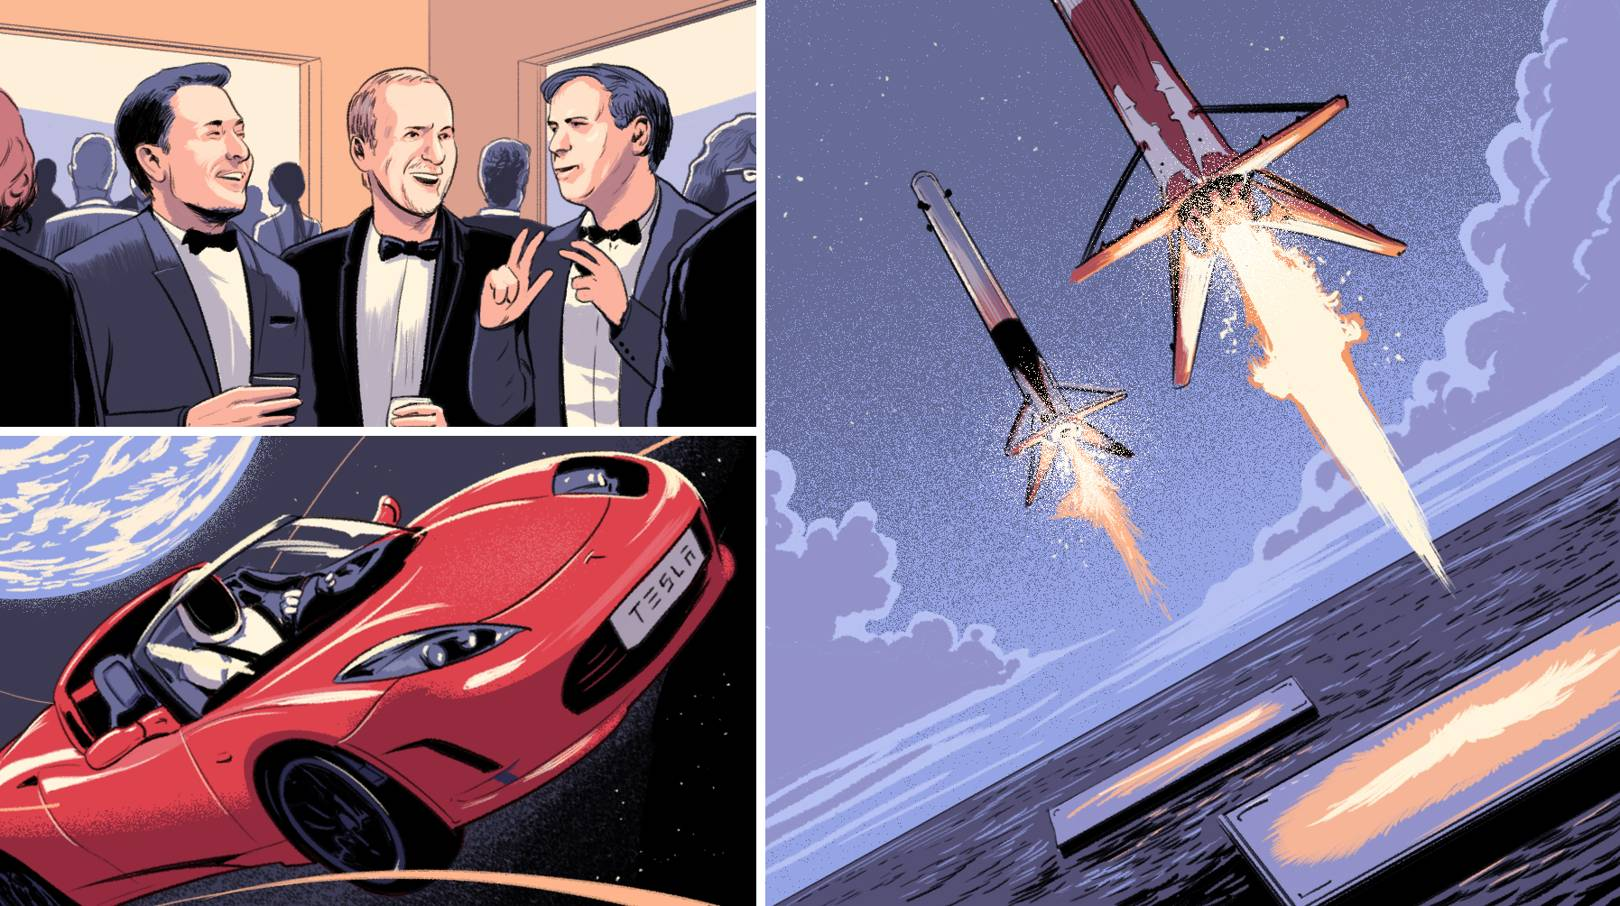 What's driving Elon Musk? We asked the people that know him best